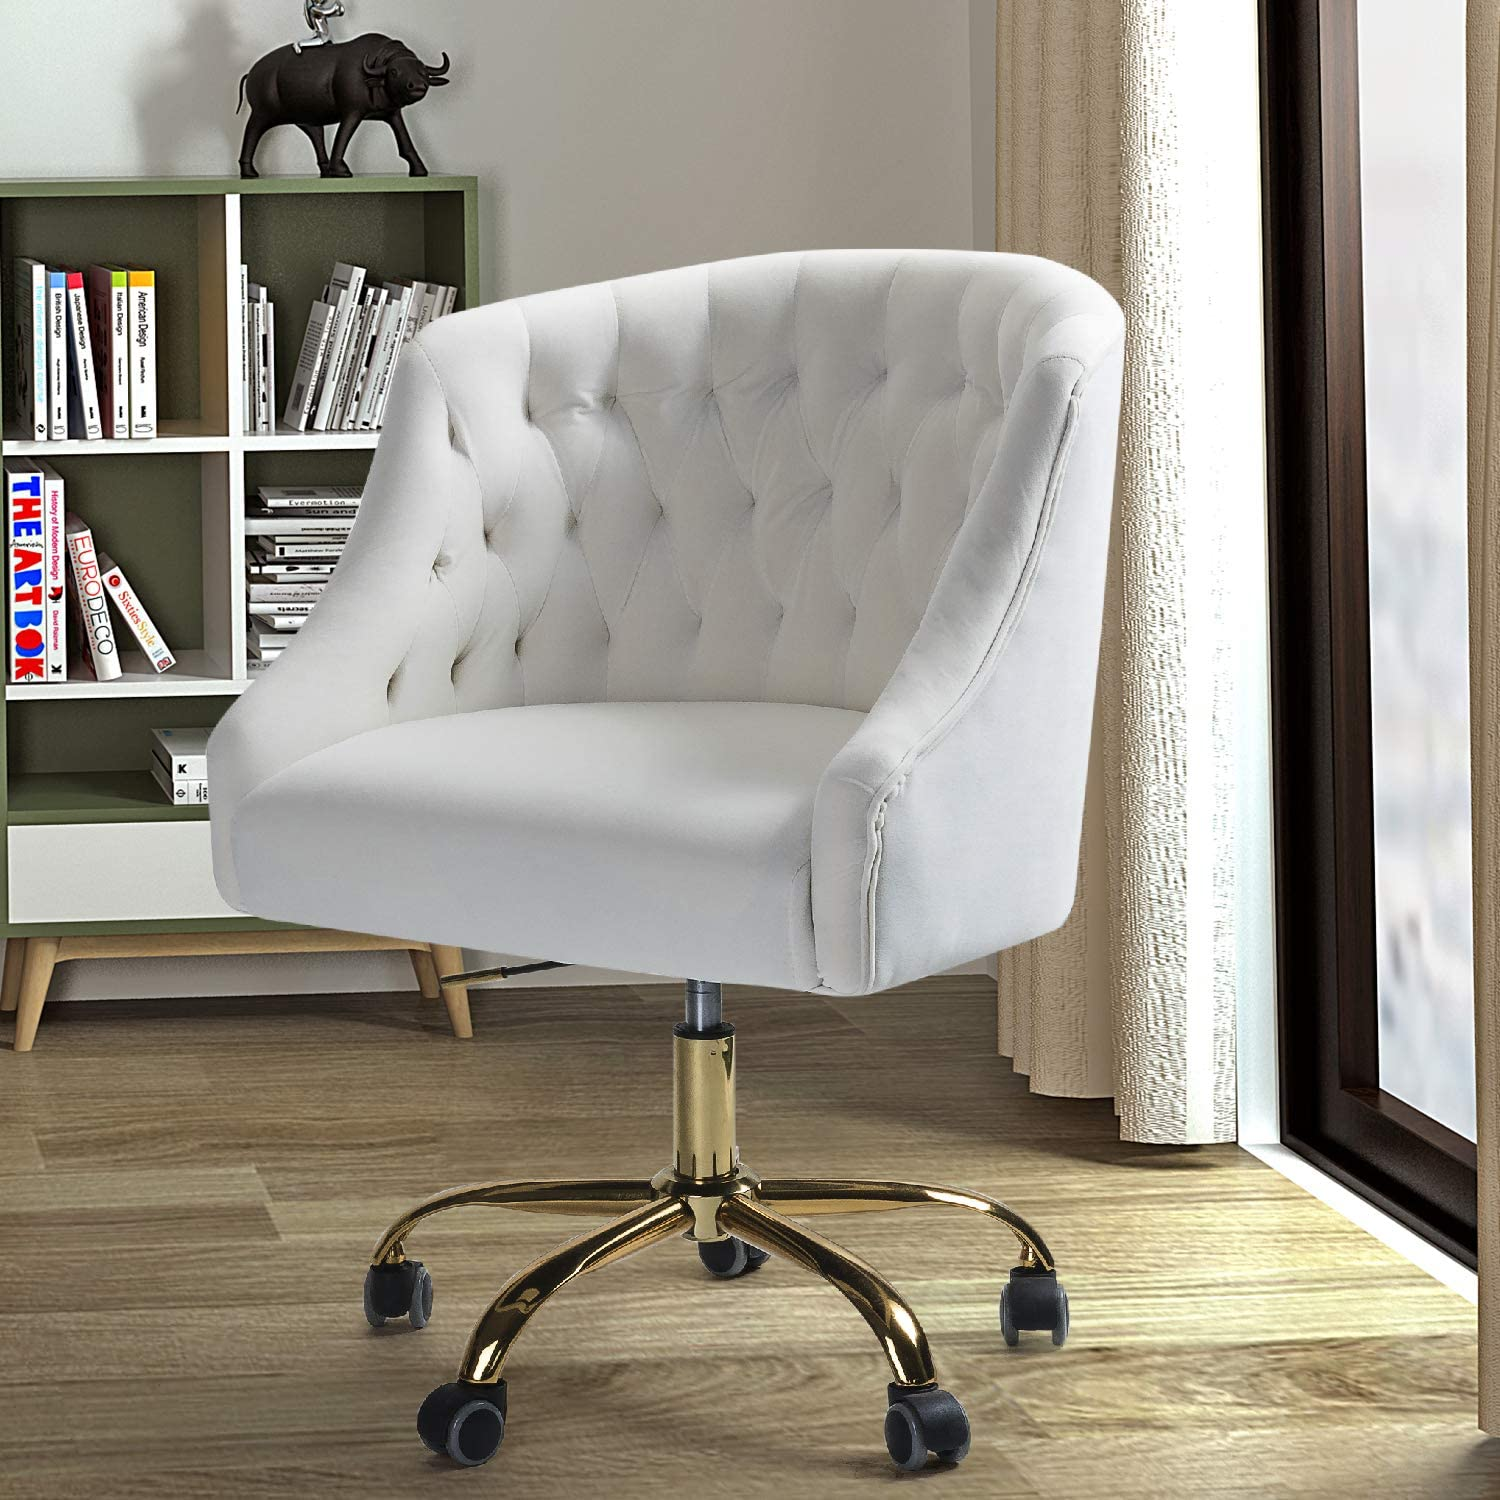 Velvet Fabric Swivel Task Chair for Home Office - Ivory